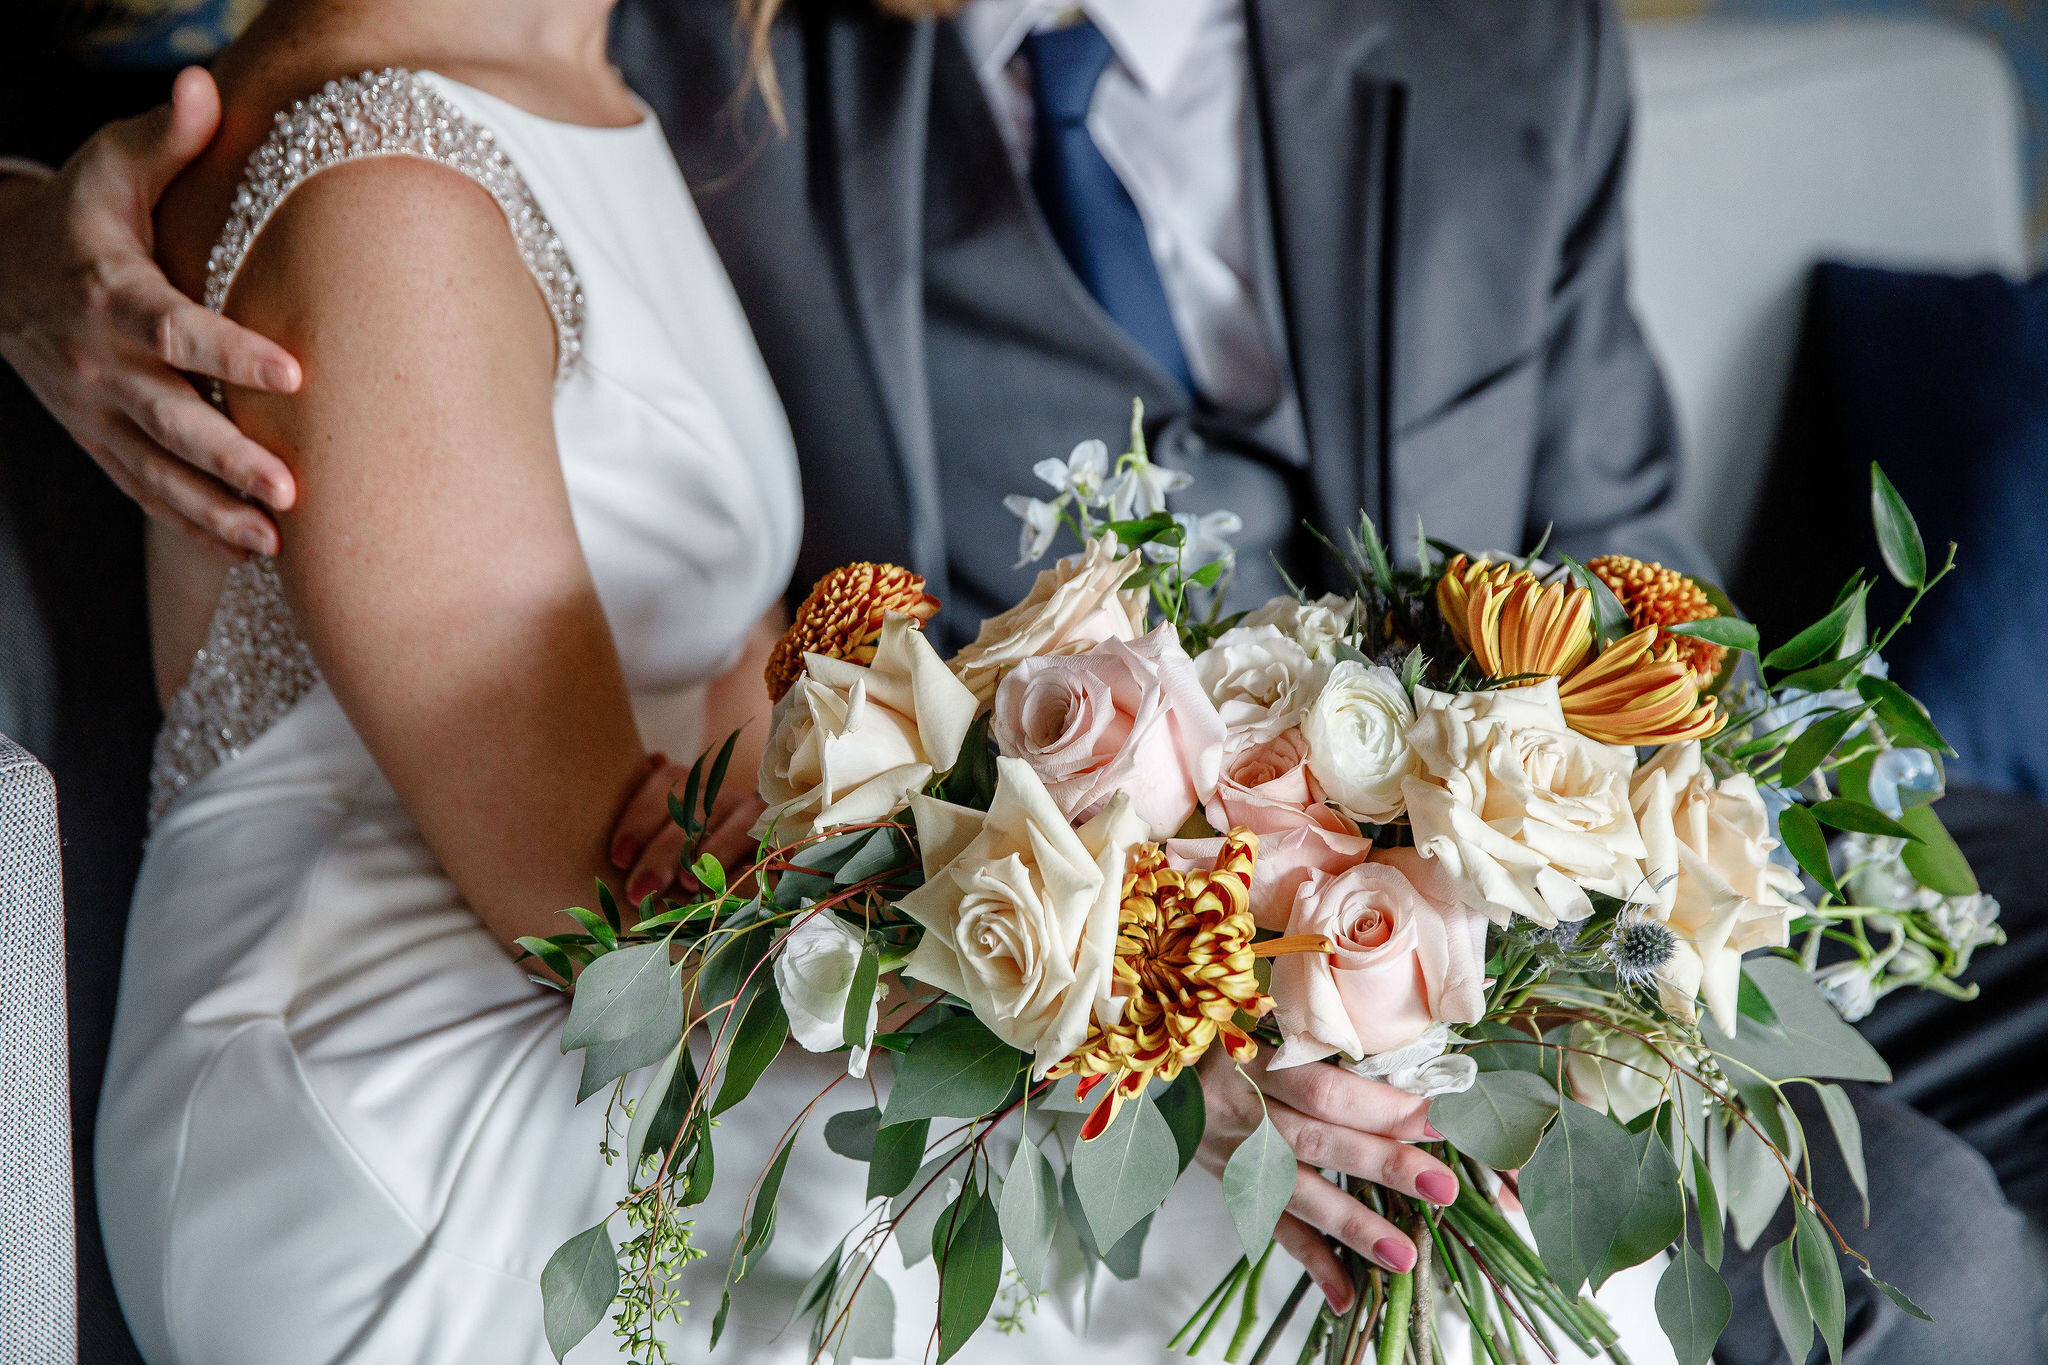 ivory-and-beau-blog-couple-and-florals-shannon-and-mike-wedding-savannah-wedding-planner-savannah-florist-savannah-wedding-southern-florist-southern-wedding-alida-hotel-144.jpg